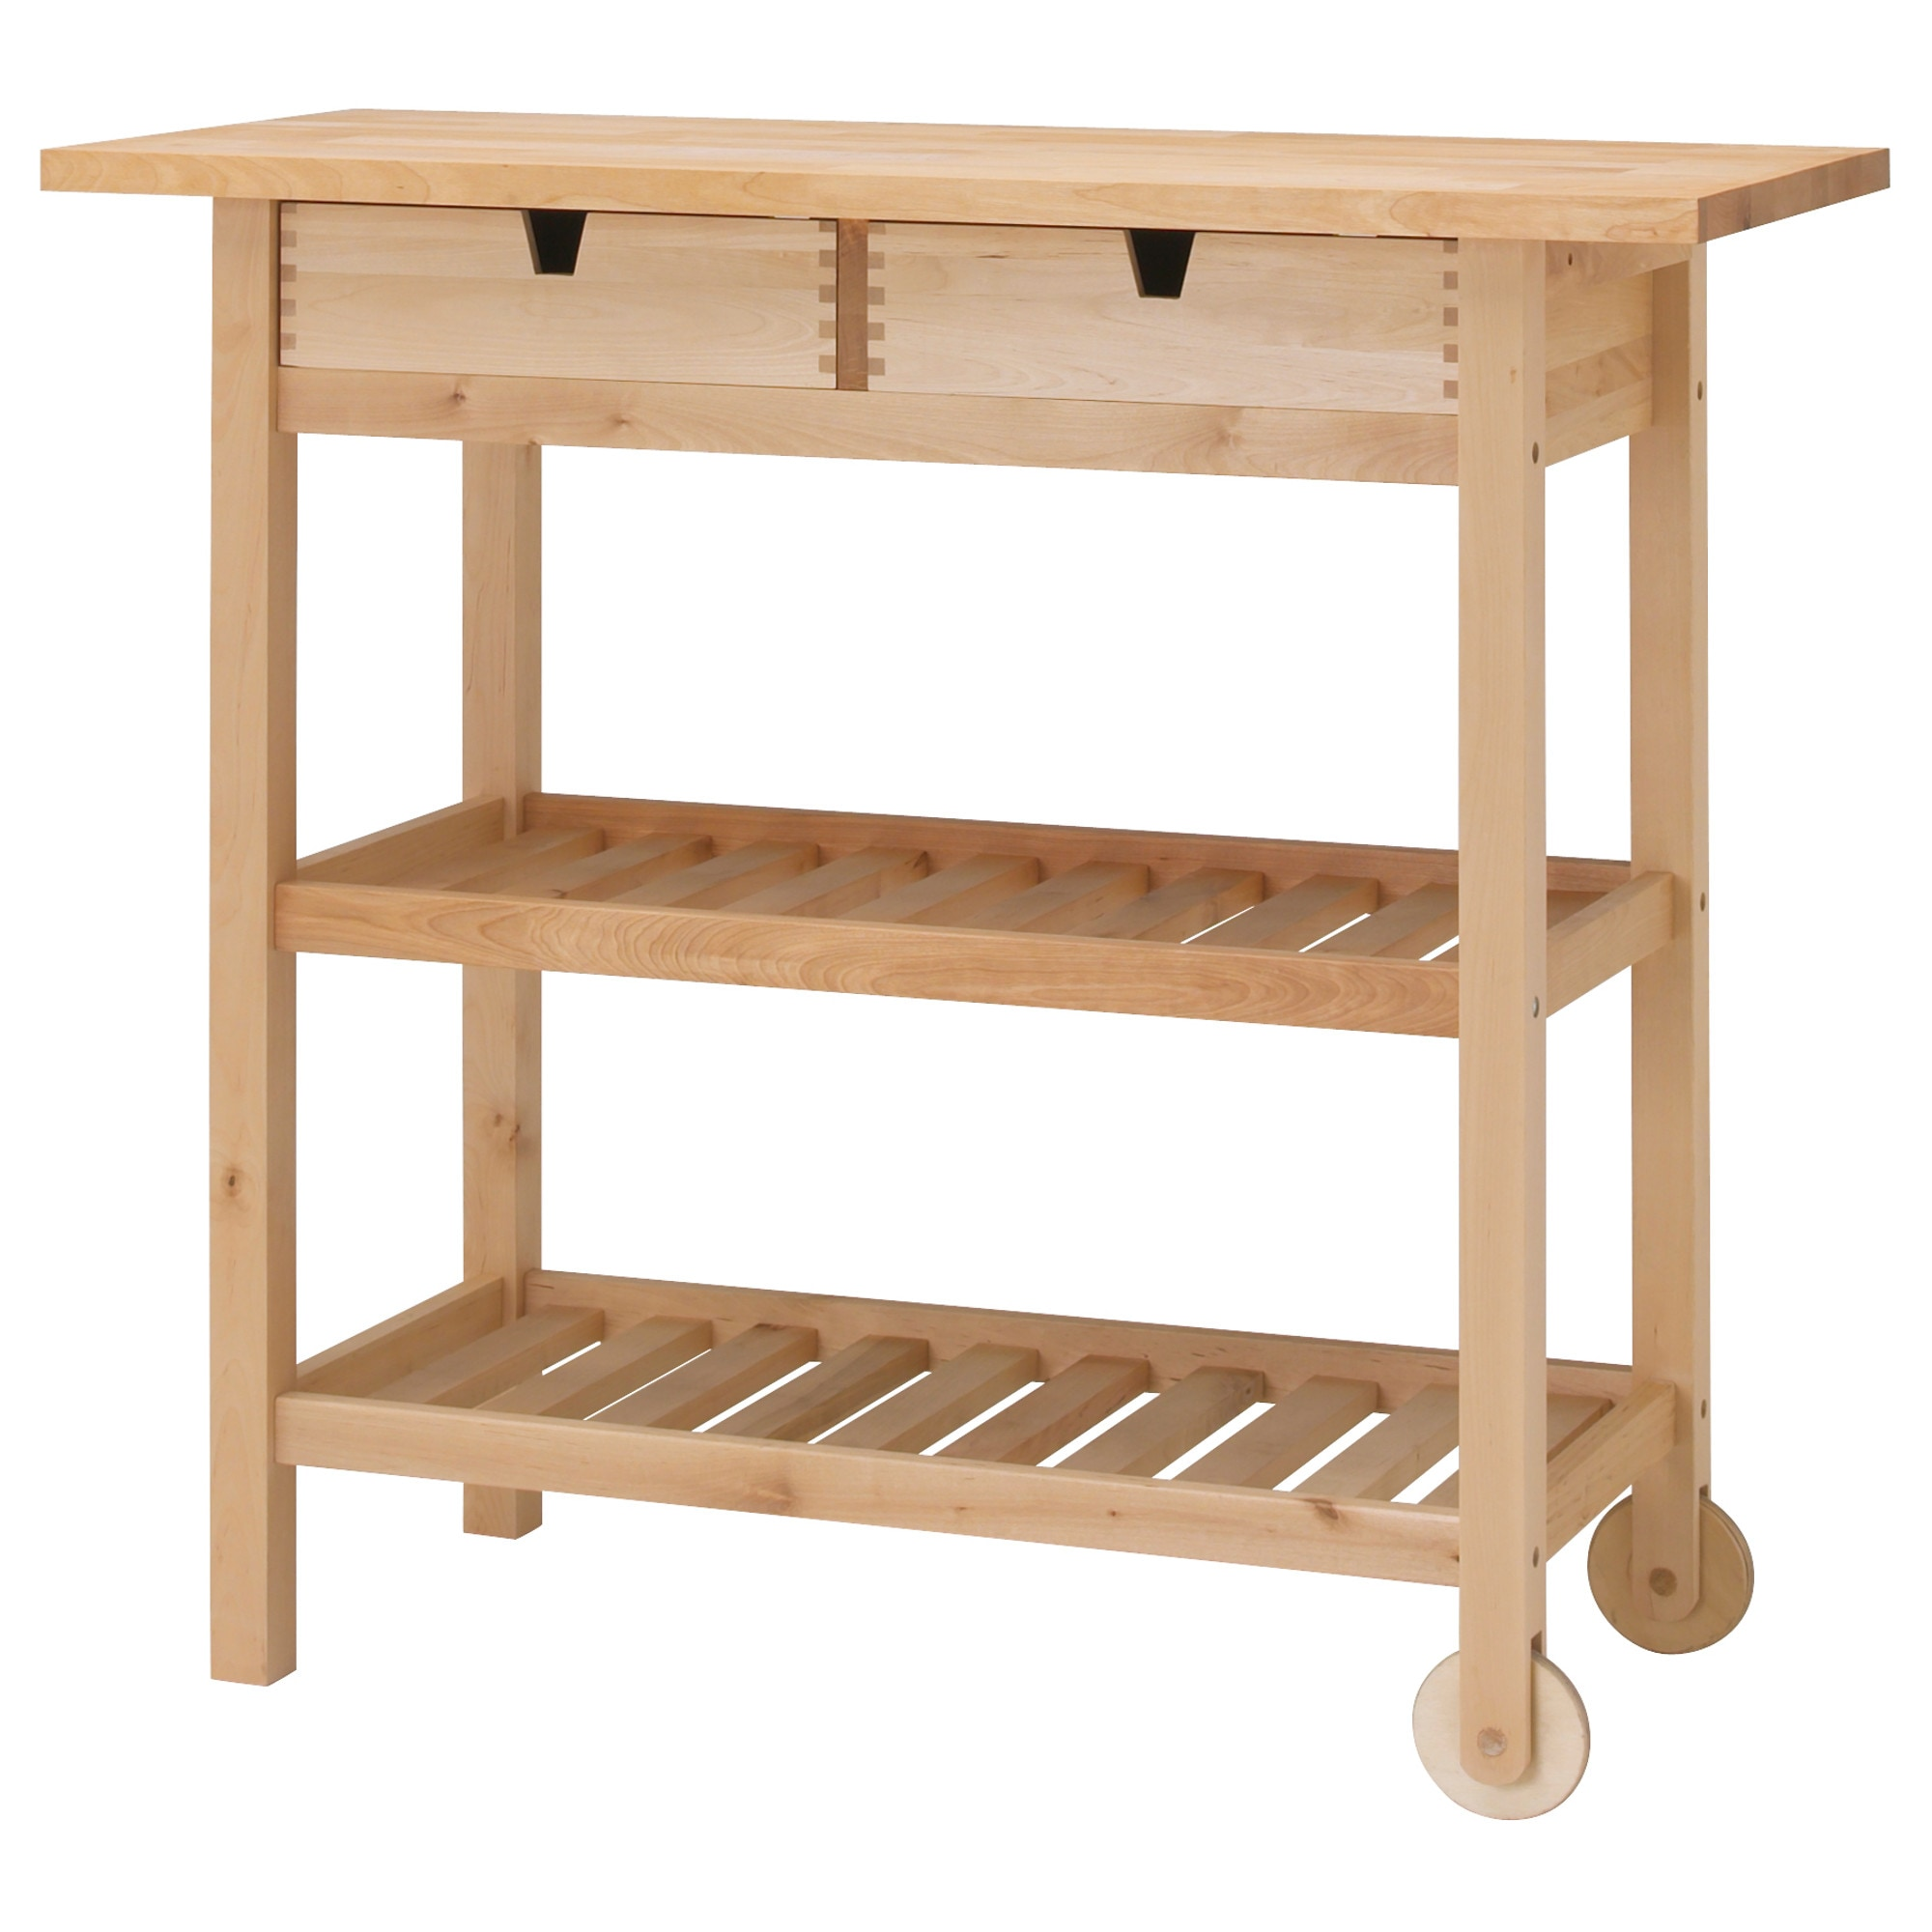 Ikea Butcher Block Island Home Design And Decor Reviews